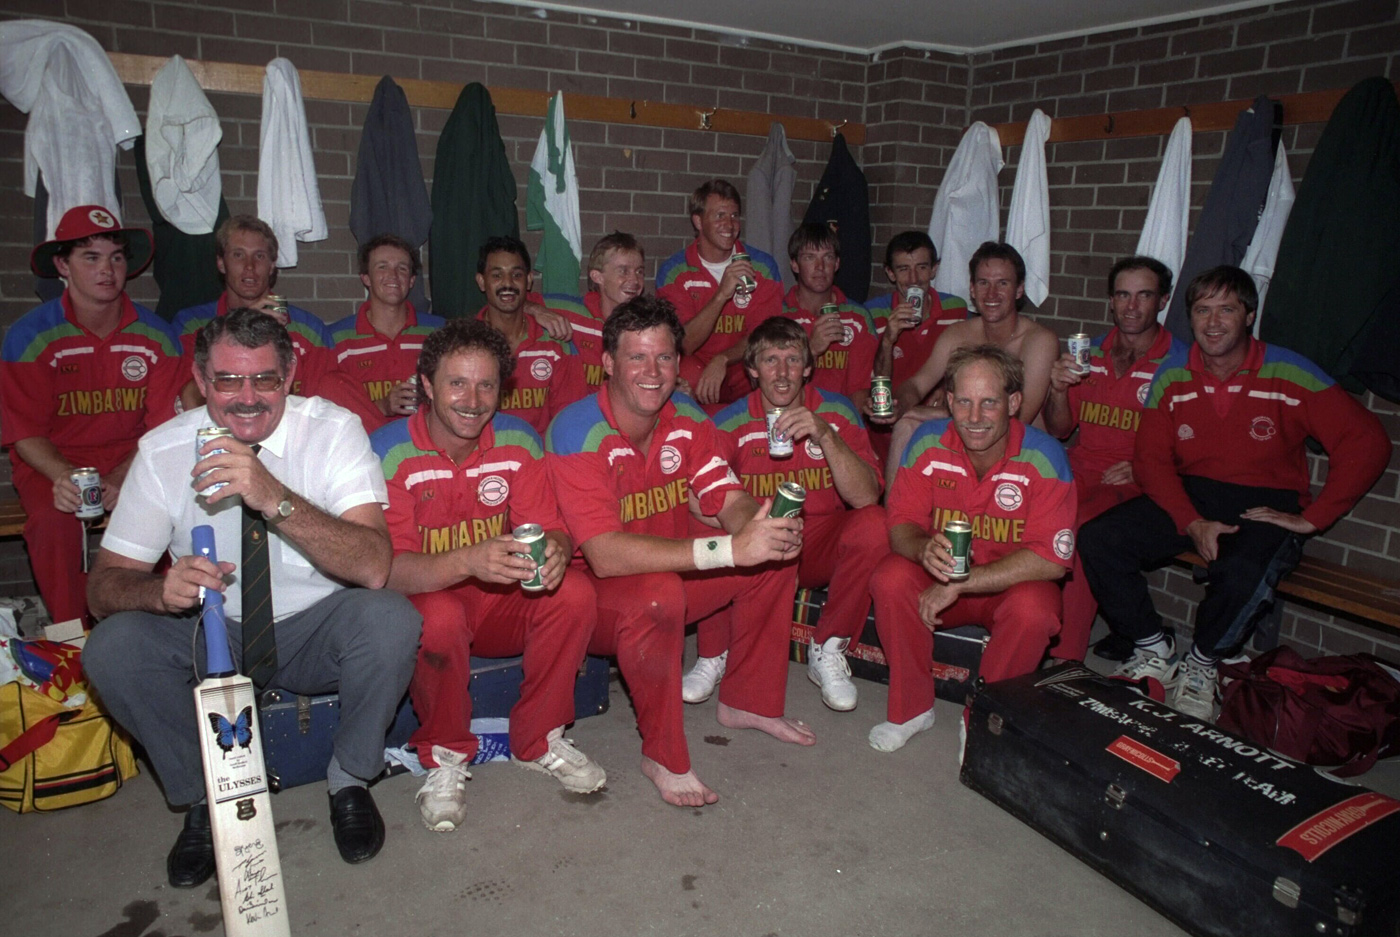 After beating England in the 1992 World Cup, defending 134